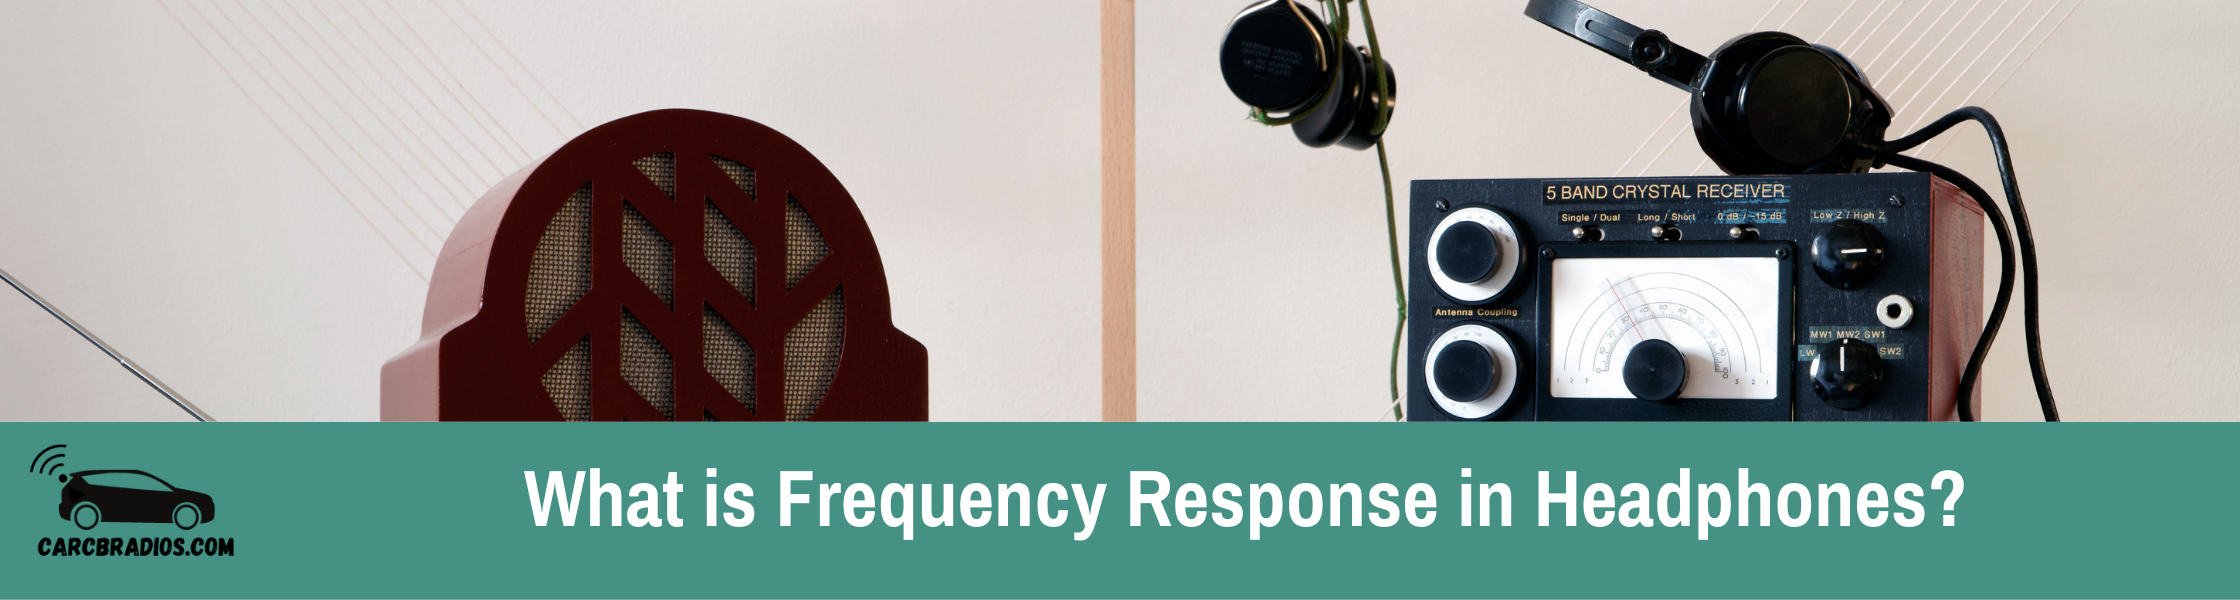 What is Frequency Response in Headphones: Frequency response in headphones is one of the key specifications for any pair of headphones. A frequency response graph represents how well (or poorly) a set of headphones can reproduce sound across all audible frequencies.